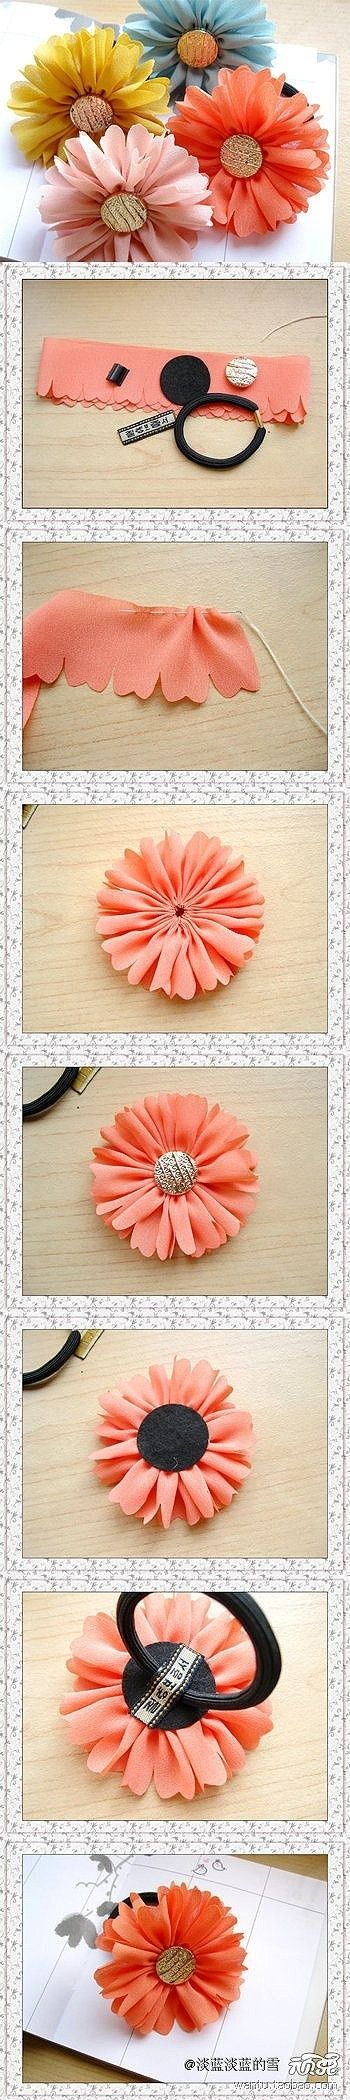 Wondering what to do with those old t-shirts? Make cute flowers out of them!